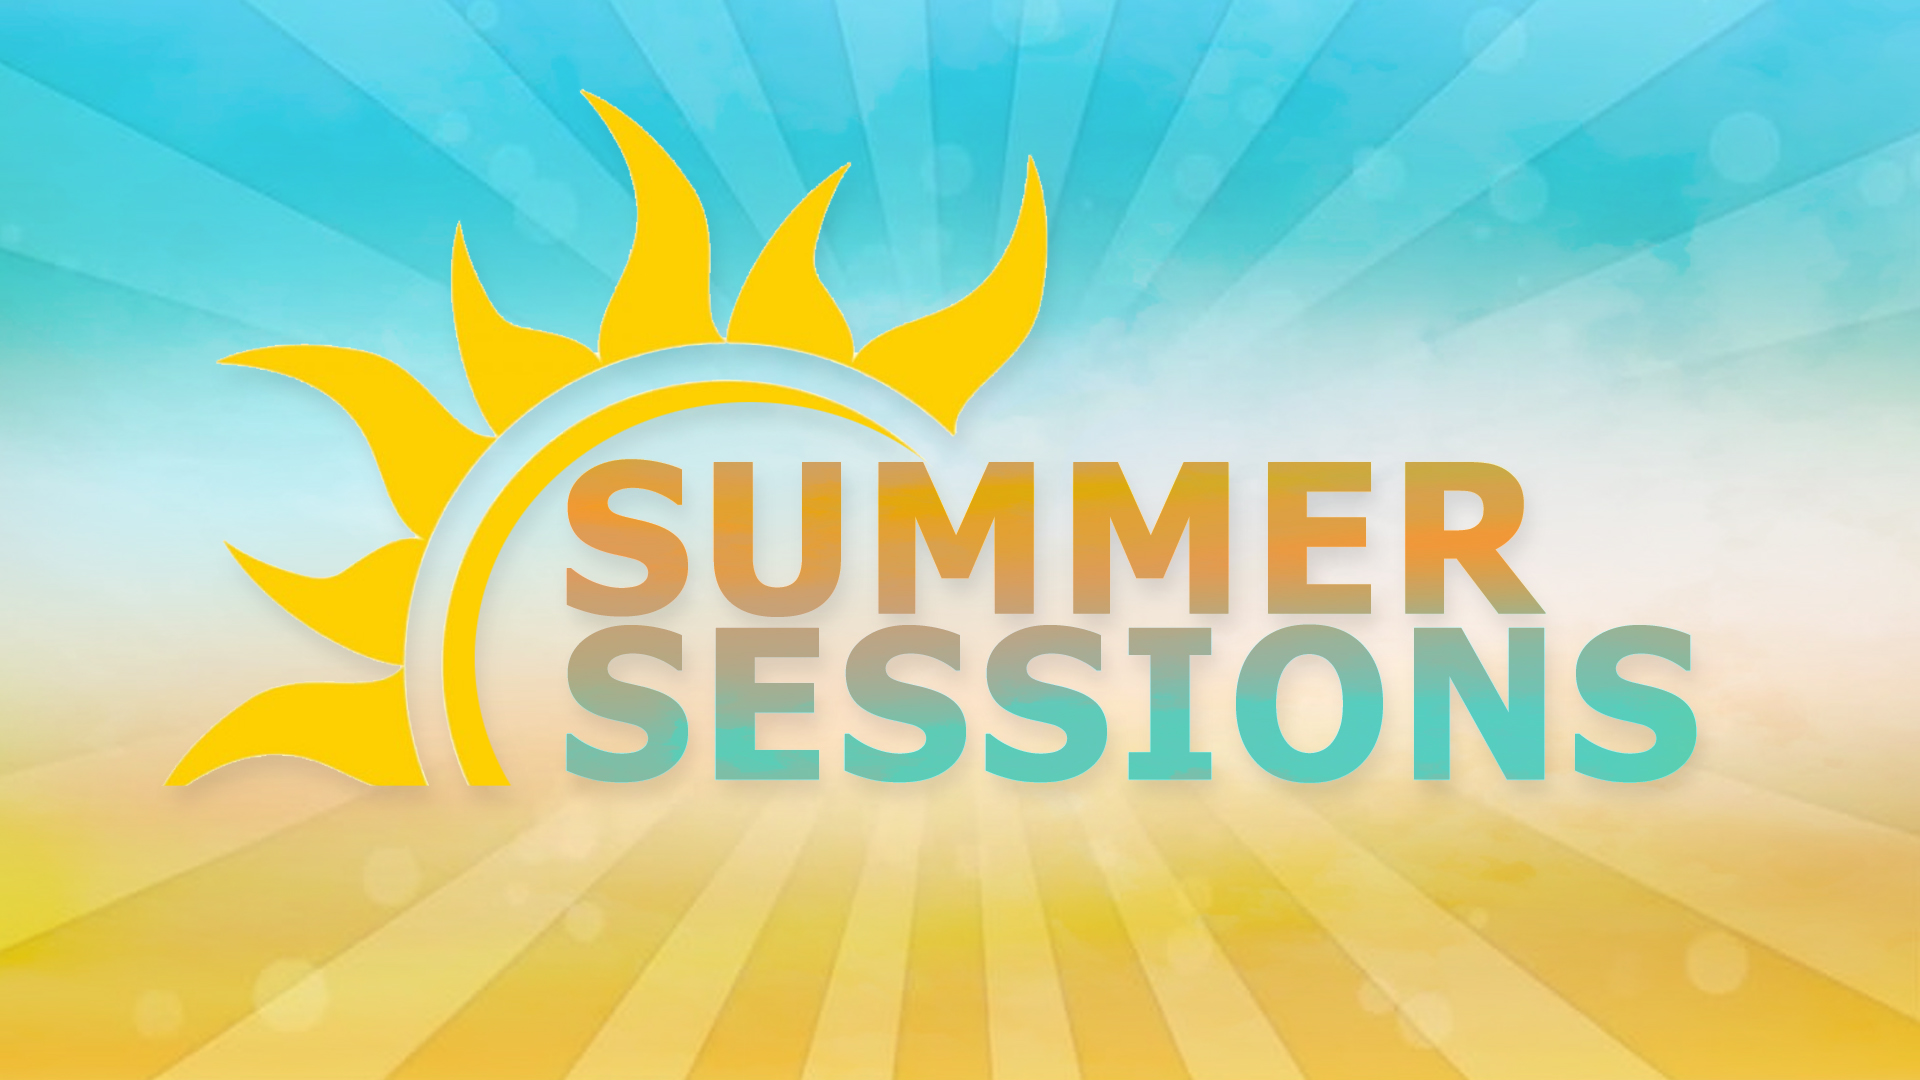 Summer Sessions -